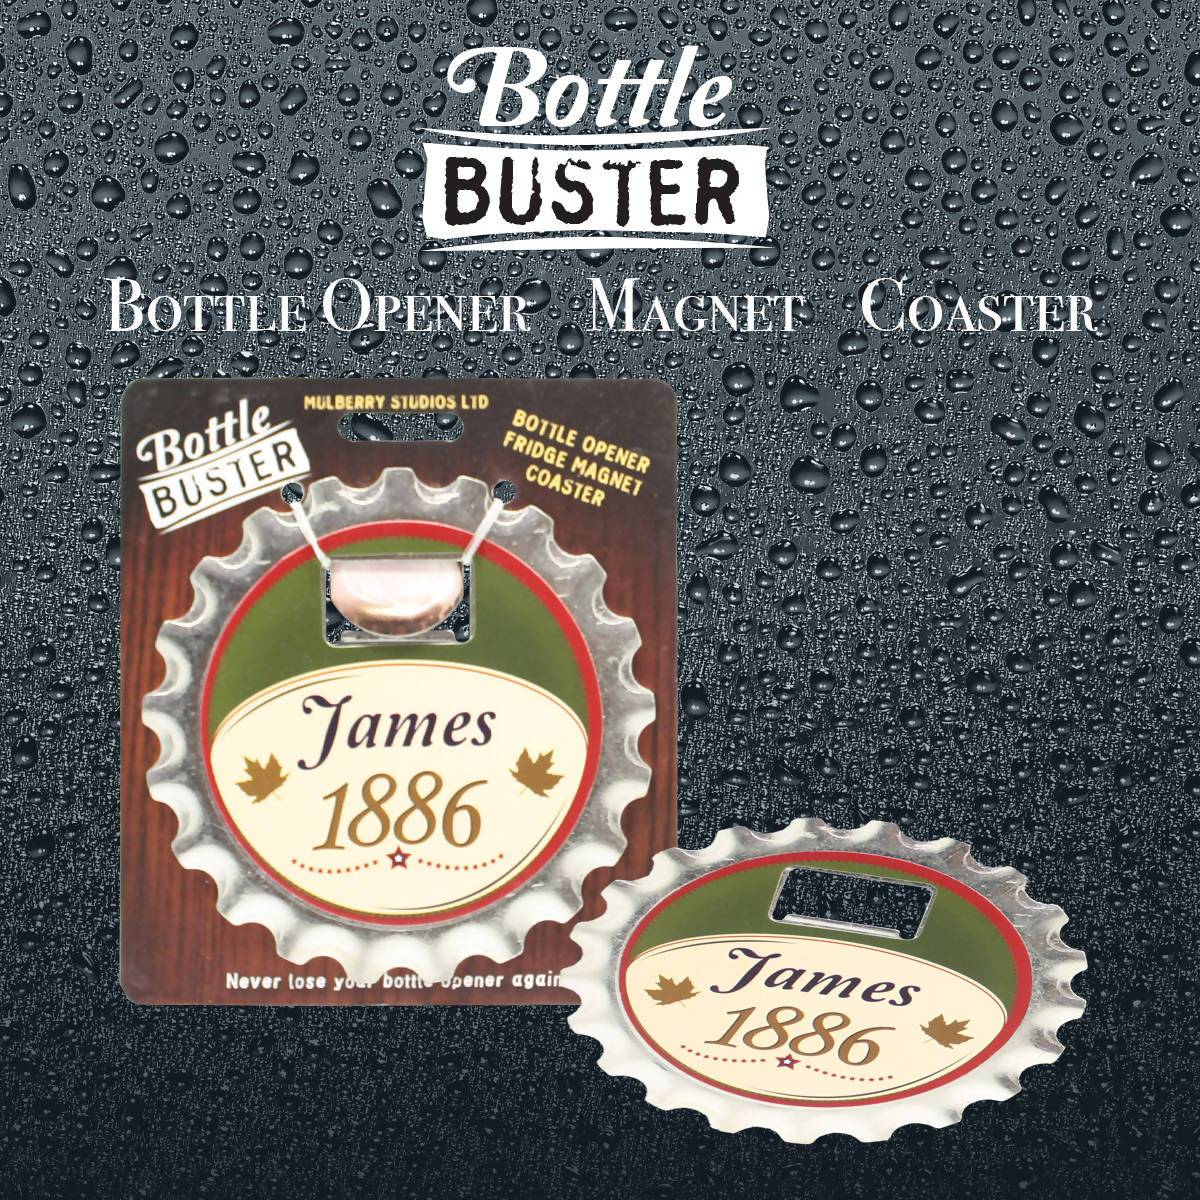 BOTTLE BUSTER - Best Bottle Opener : James - Bottle Openers - La Belle Collection - Naiise